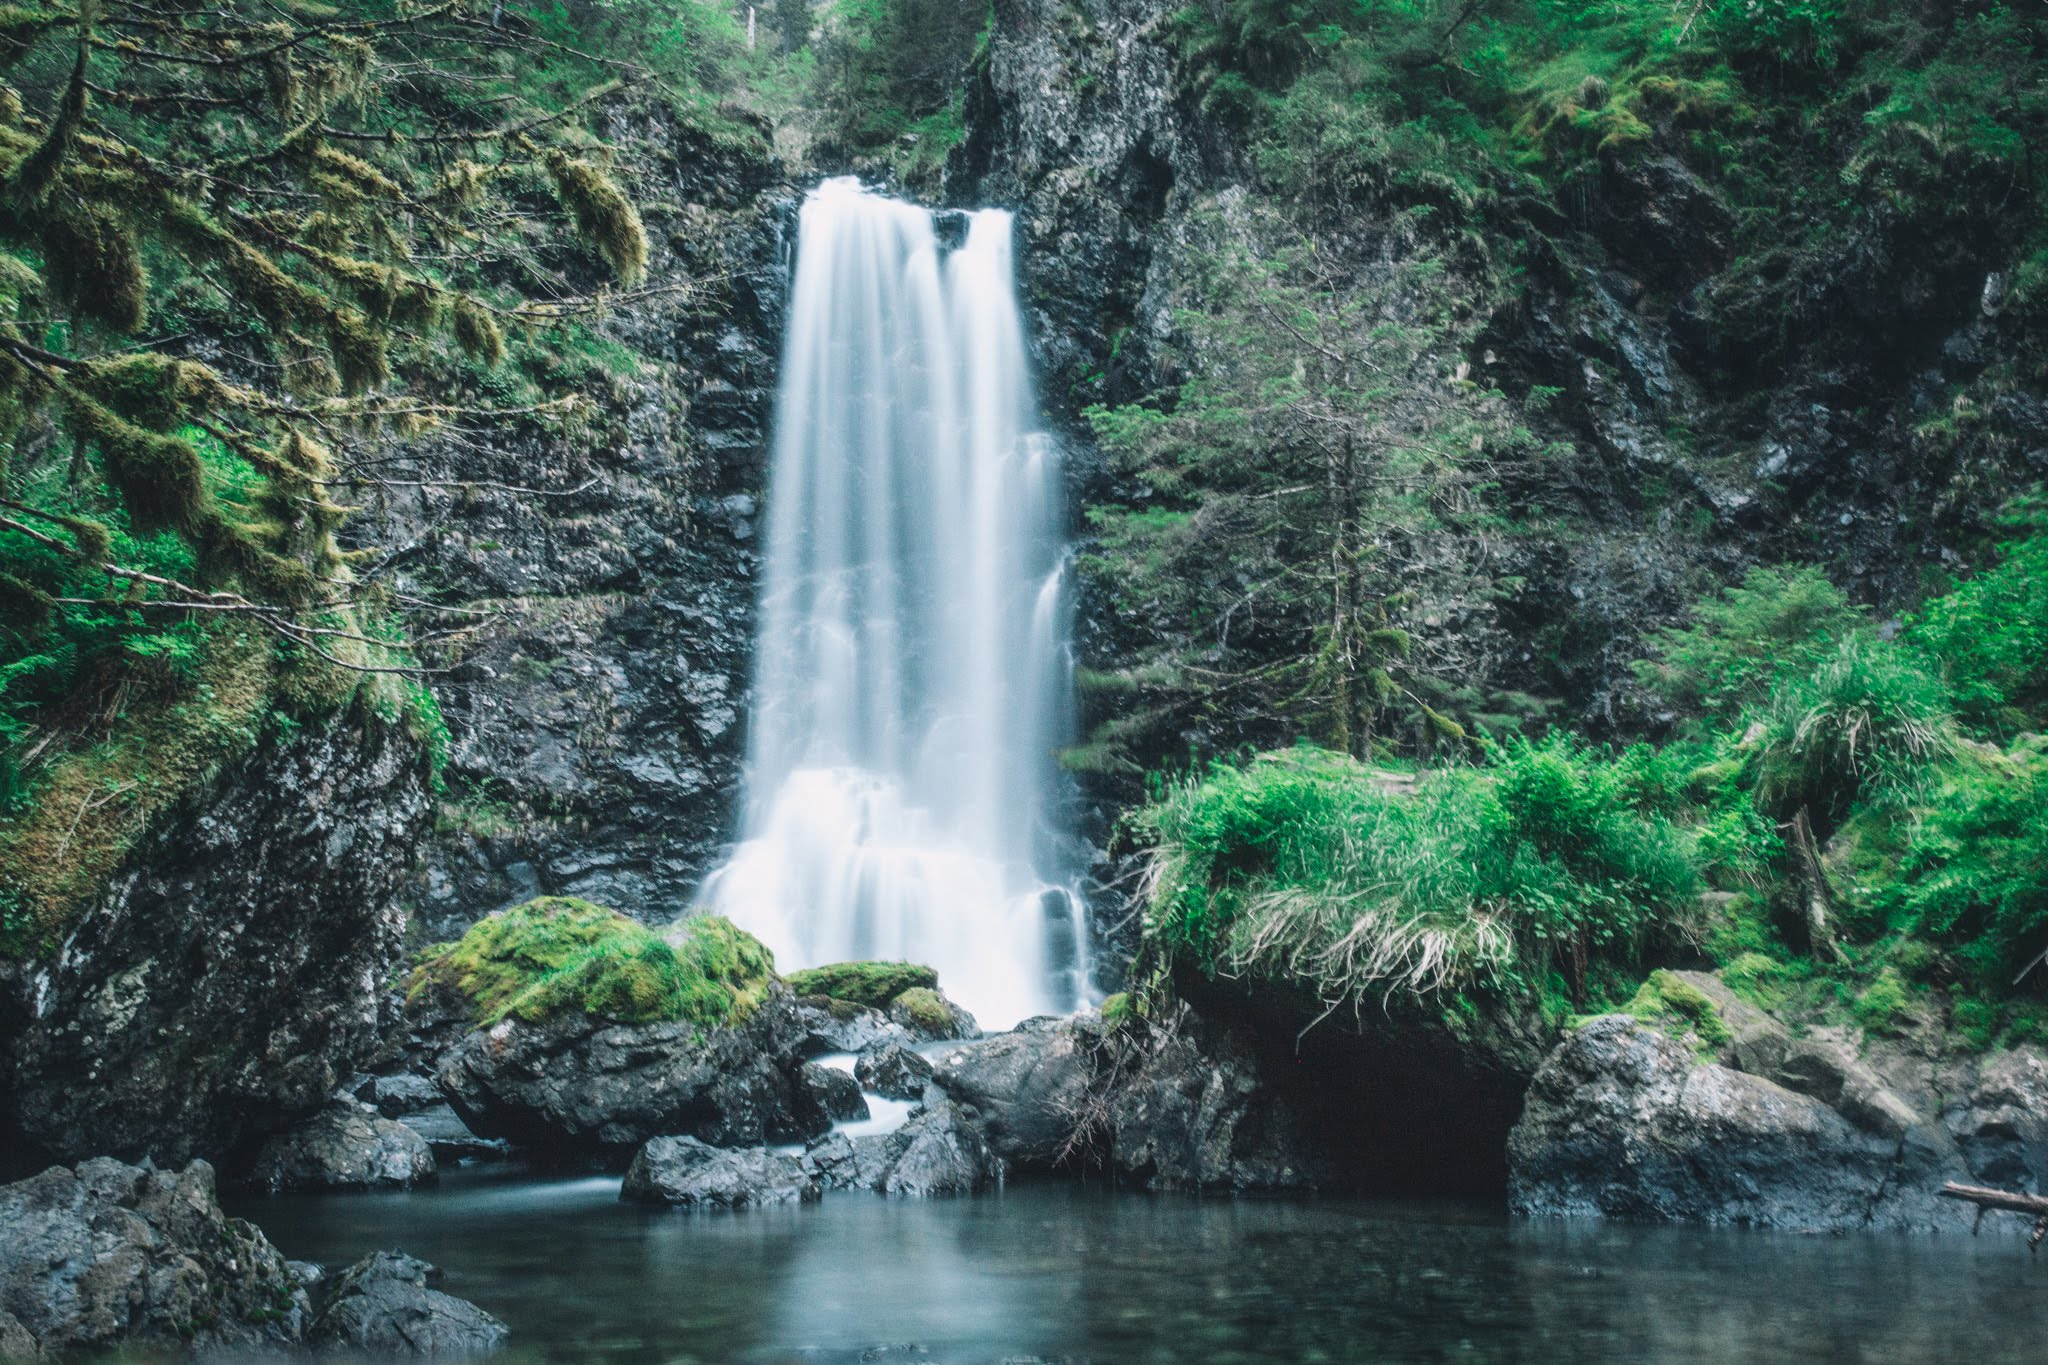 The waterfall in Humpy Cove to which thousands of pink salmon return every year to spawn. Photo credit: Mikey Huff.